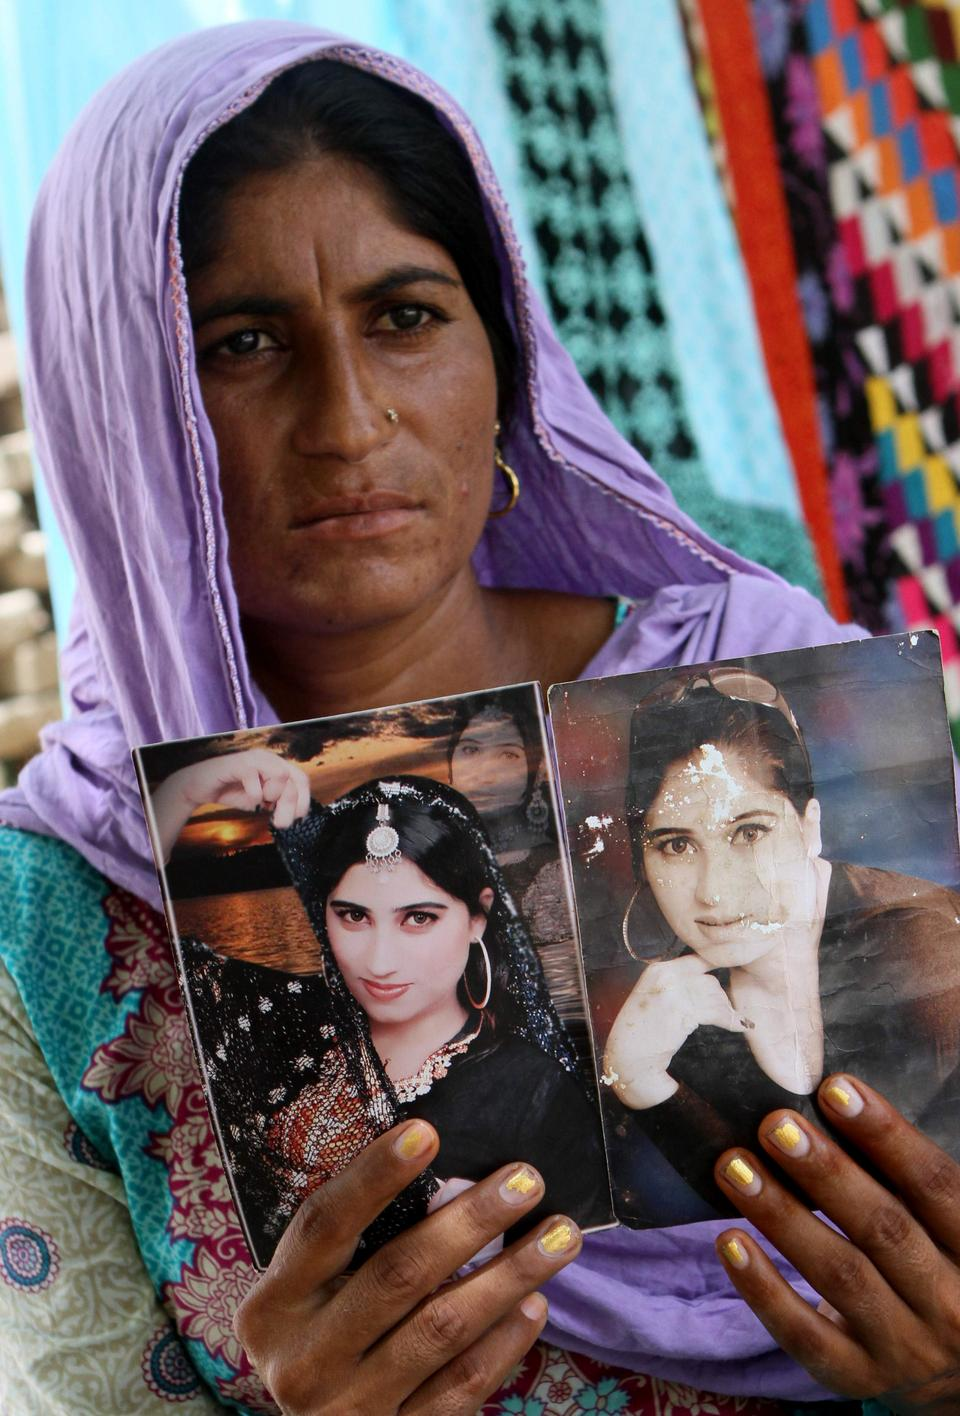 In this October 18, 2016, photo, a family member shows pictures of controversial social media celebrity Qandeel Baloch, in Shah Sadderuddin, Pakistan. Baloch grew up in a poor farming family but